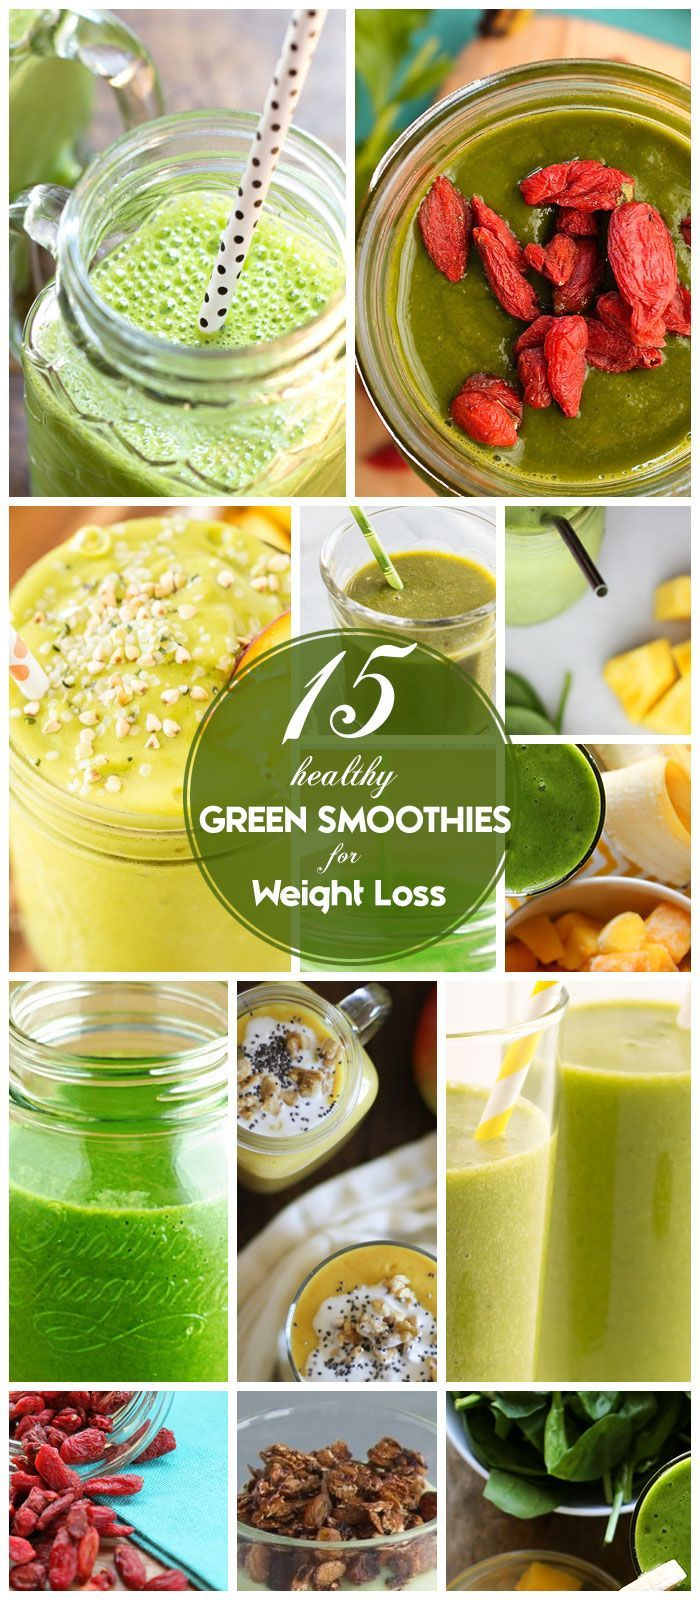 Quickest way to lose fat on your face